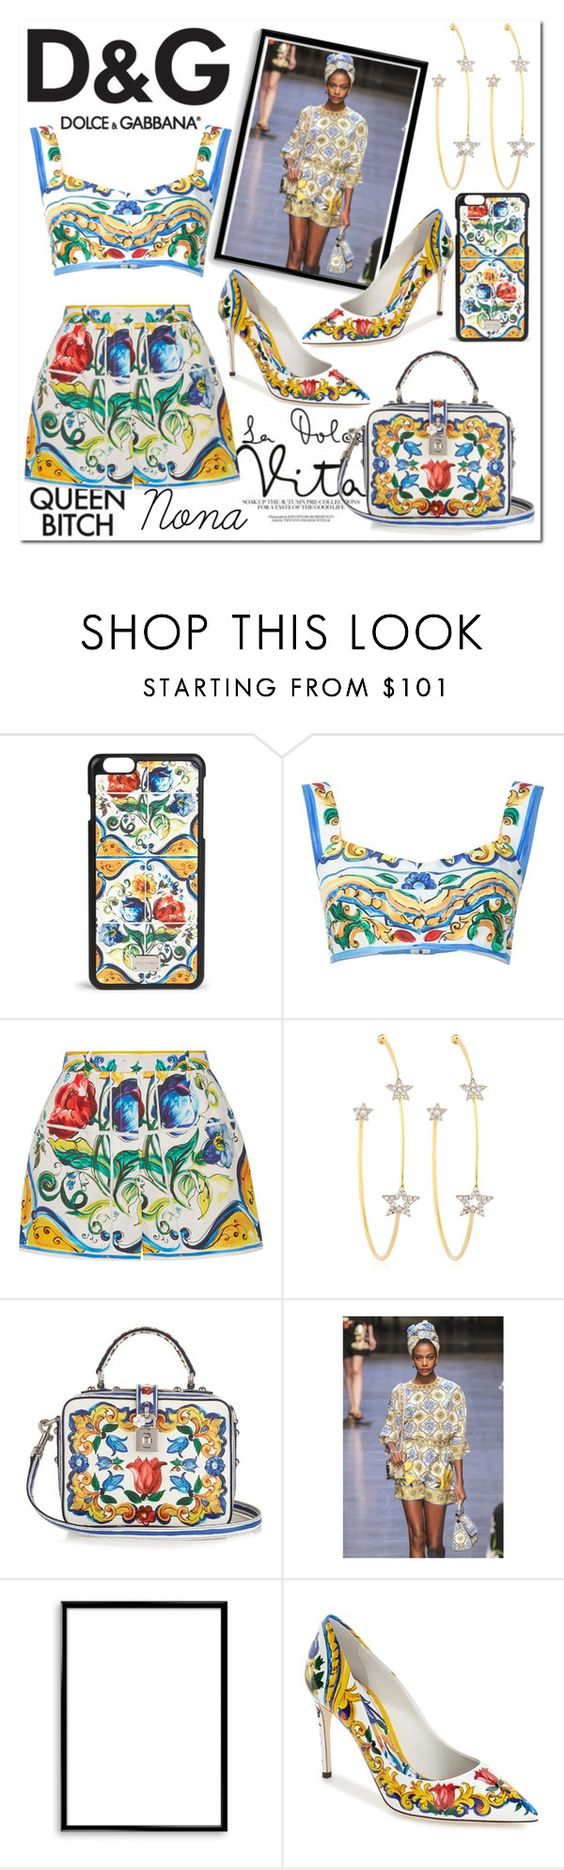 """D&G"" by delunaray ❤ liked on Polyvore featuring Dolce&Gabbana, PERLOTA, Bomedo and polyvoreeditorial"